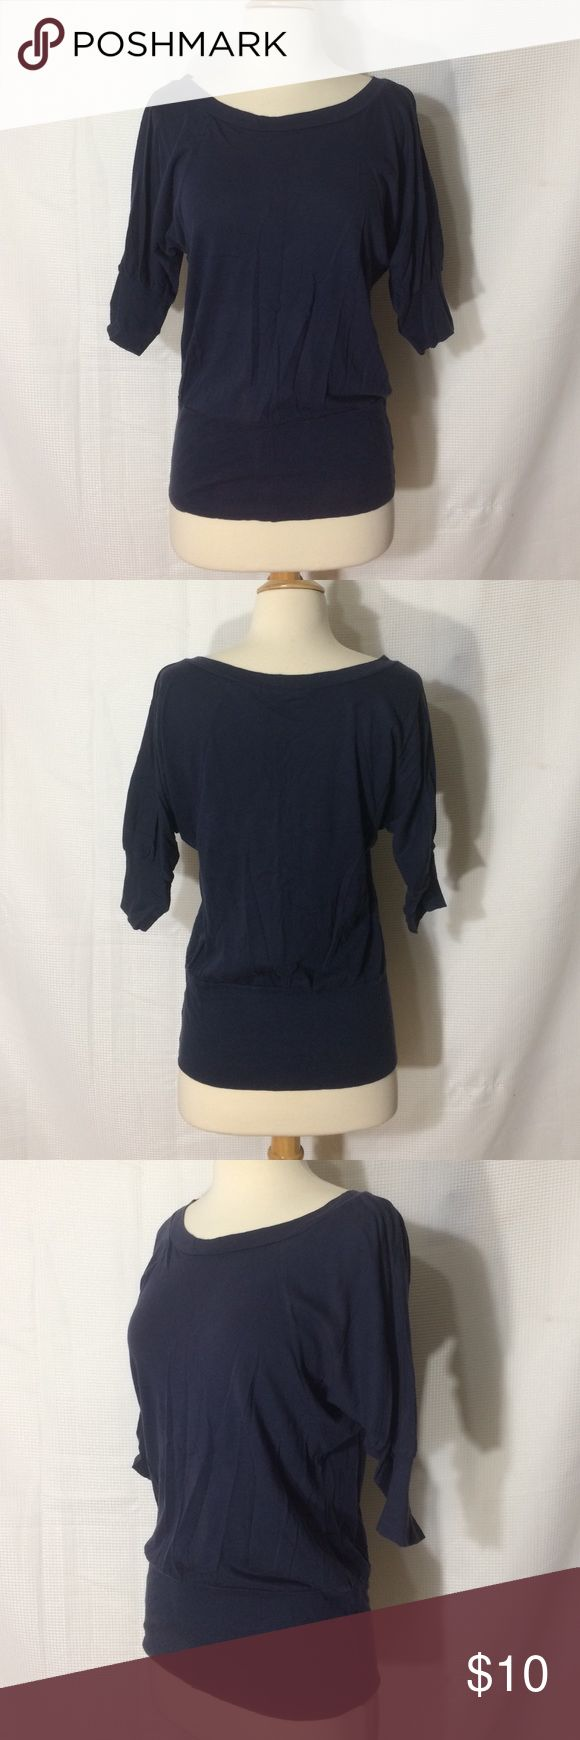 """Navy batwing top Euc, no holes or tears. 25"""" top to bottom, 15.5"""" sleeves, 16"""" across pit to pit. Stretchy banded bottom, 15"""" across. Forever 21 Tops Blouses"""